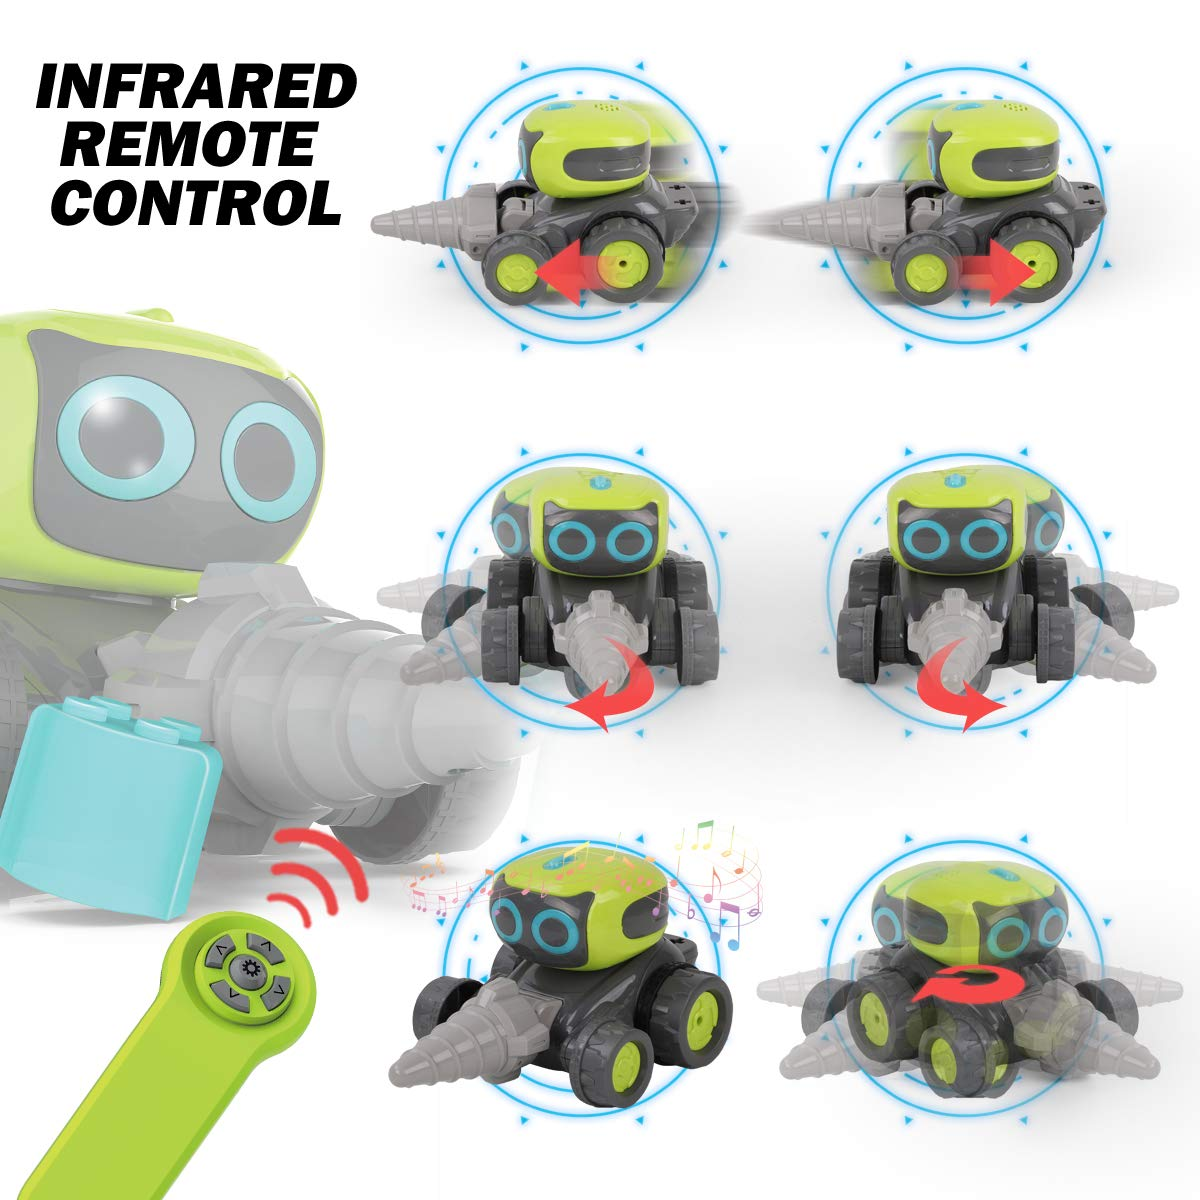 Remoking STEM RC Remote Control Engineering Robot Vehicle Toy, Smart Intelligent Electronic Educational Construction Car, Interactive Novelty Funny Gift of Building Block for Ages 3 and up by REMOKING (Image #3)